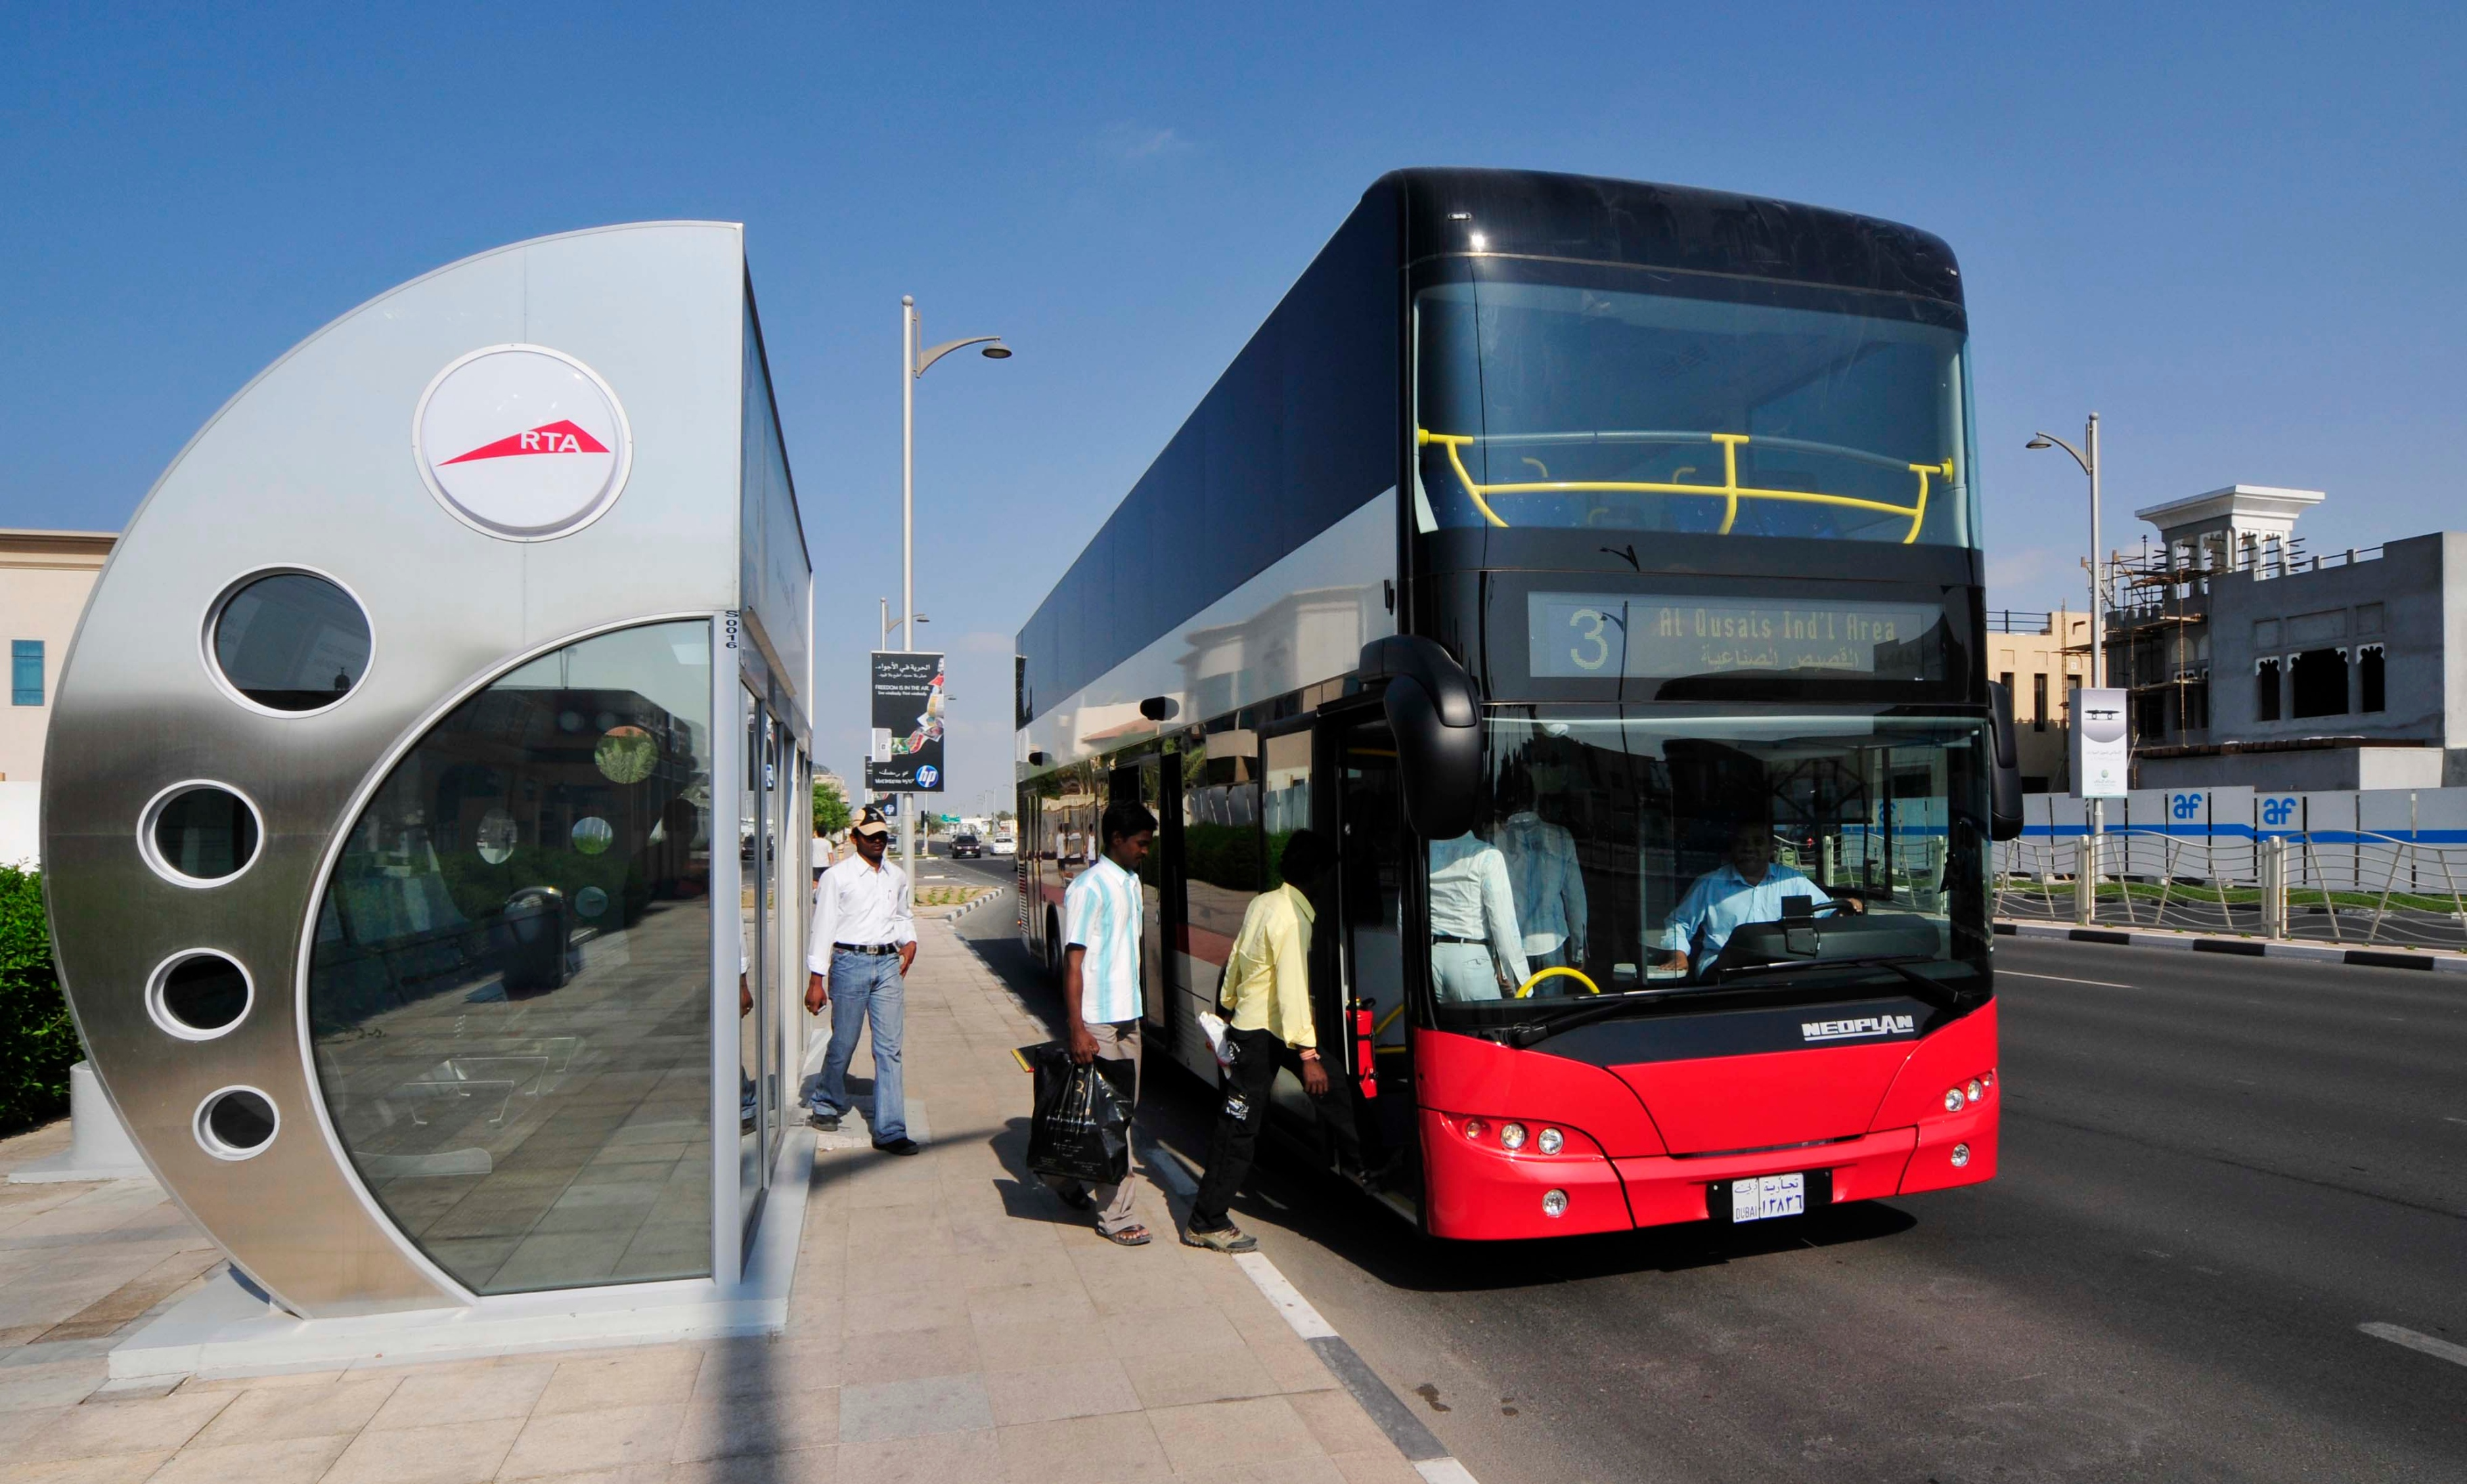 Rta Launches A New Night Bus Service Emirates24 7